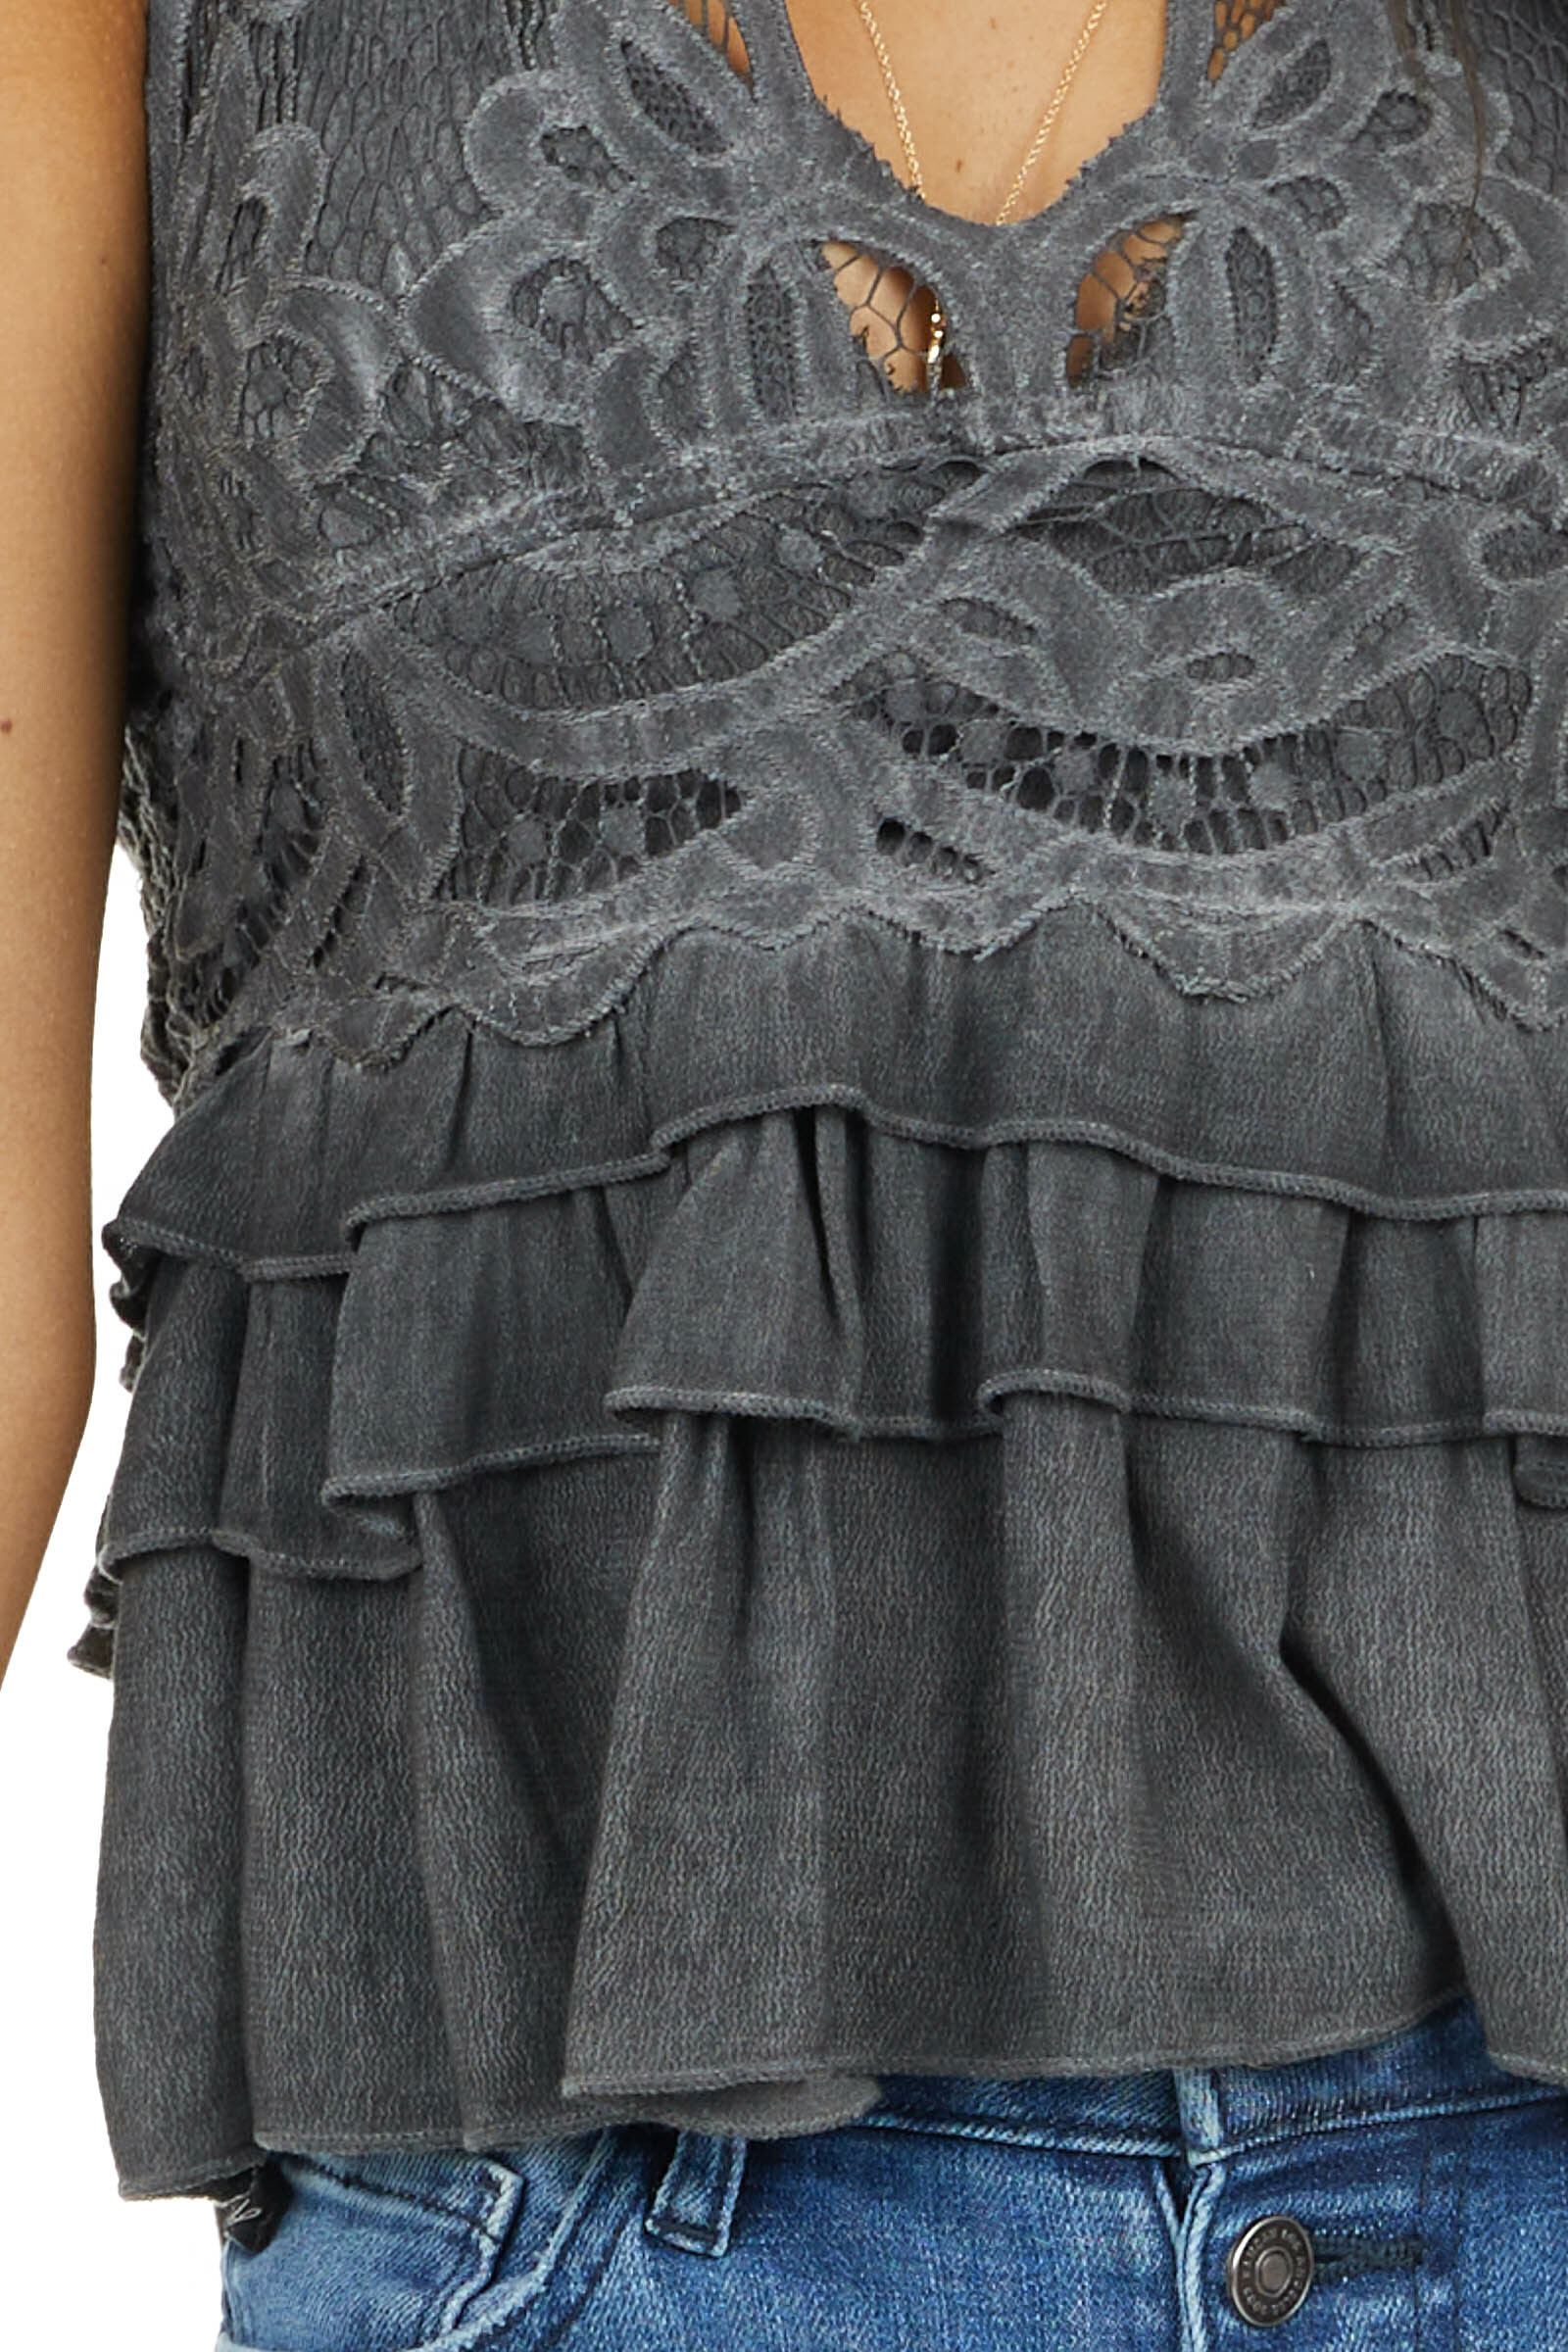 Charcoal Crochet Lace Sleeveless Top with Ruffled Bottom